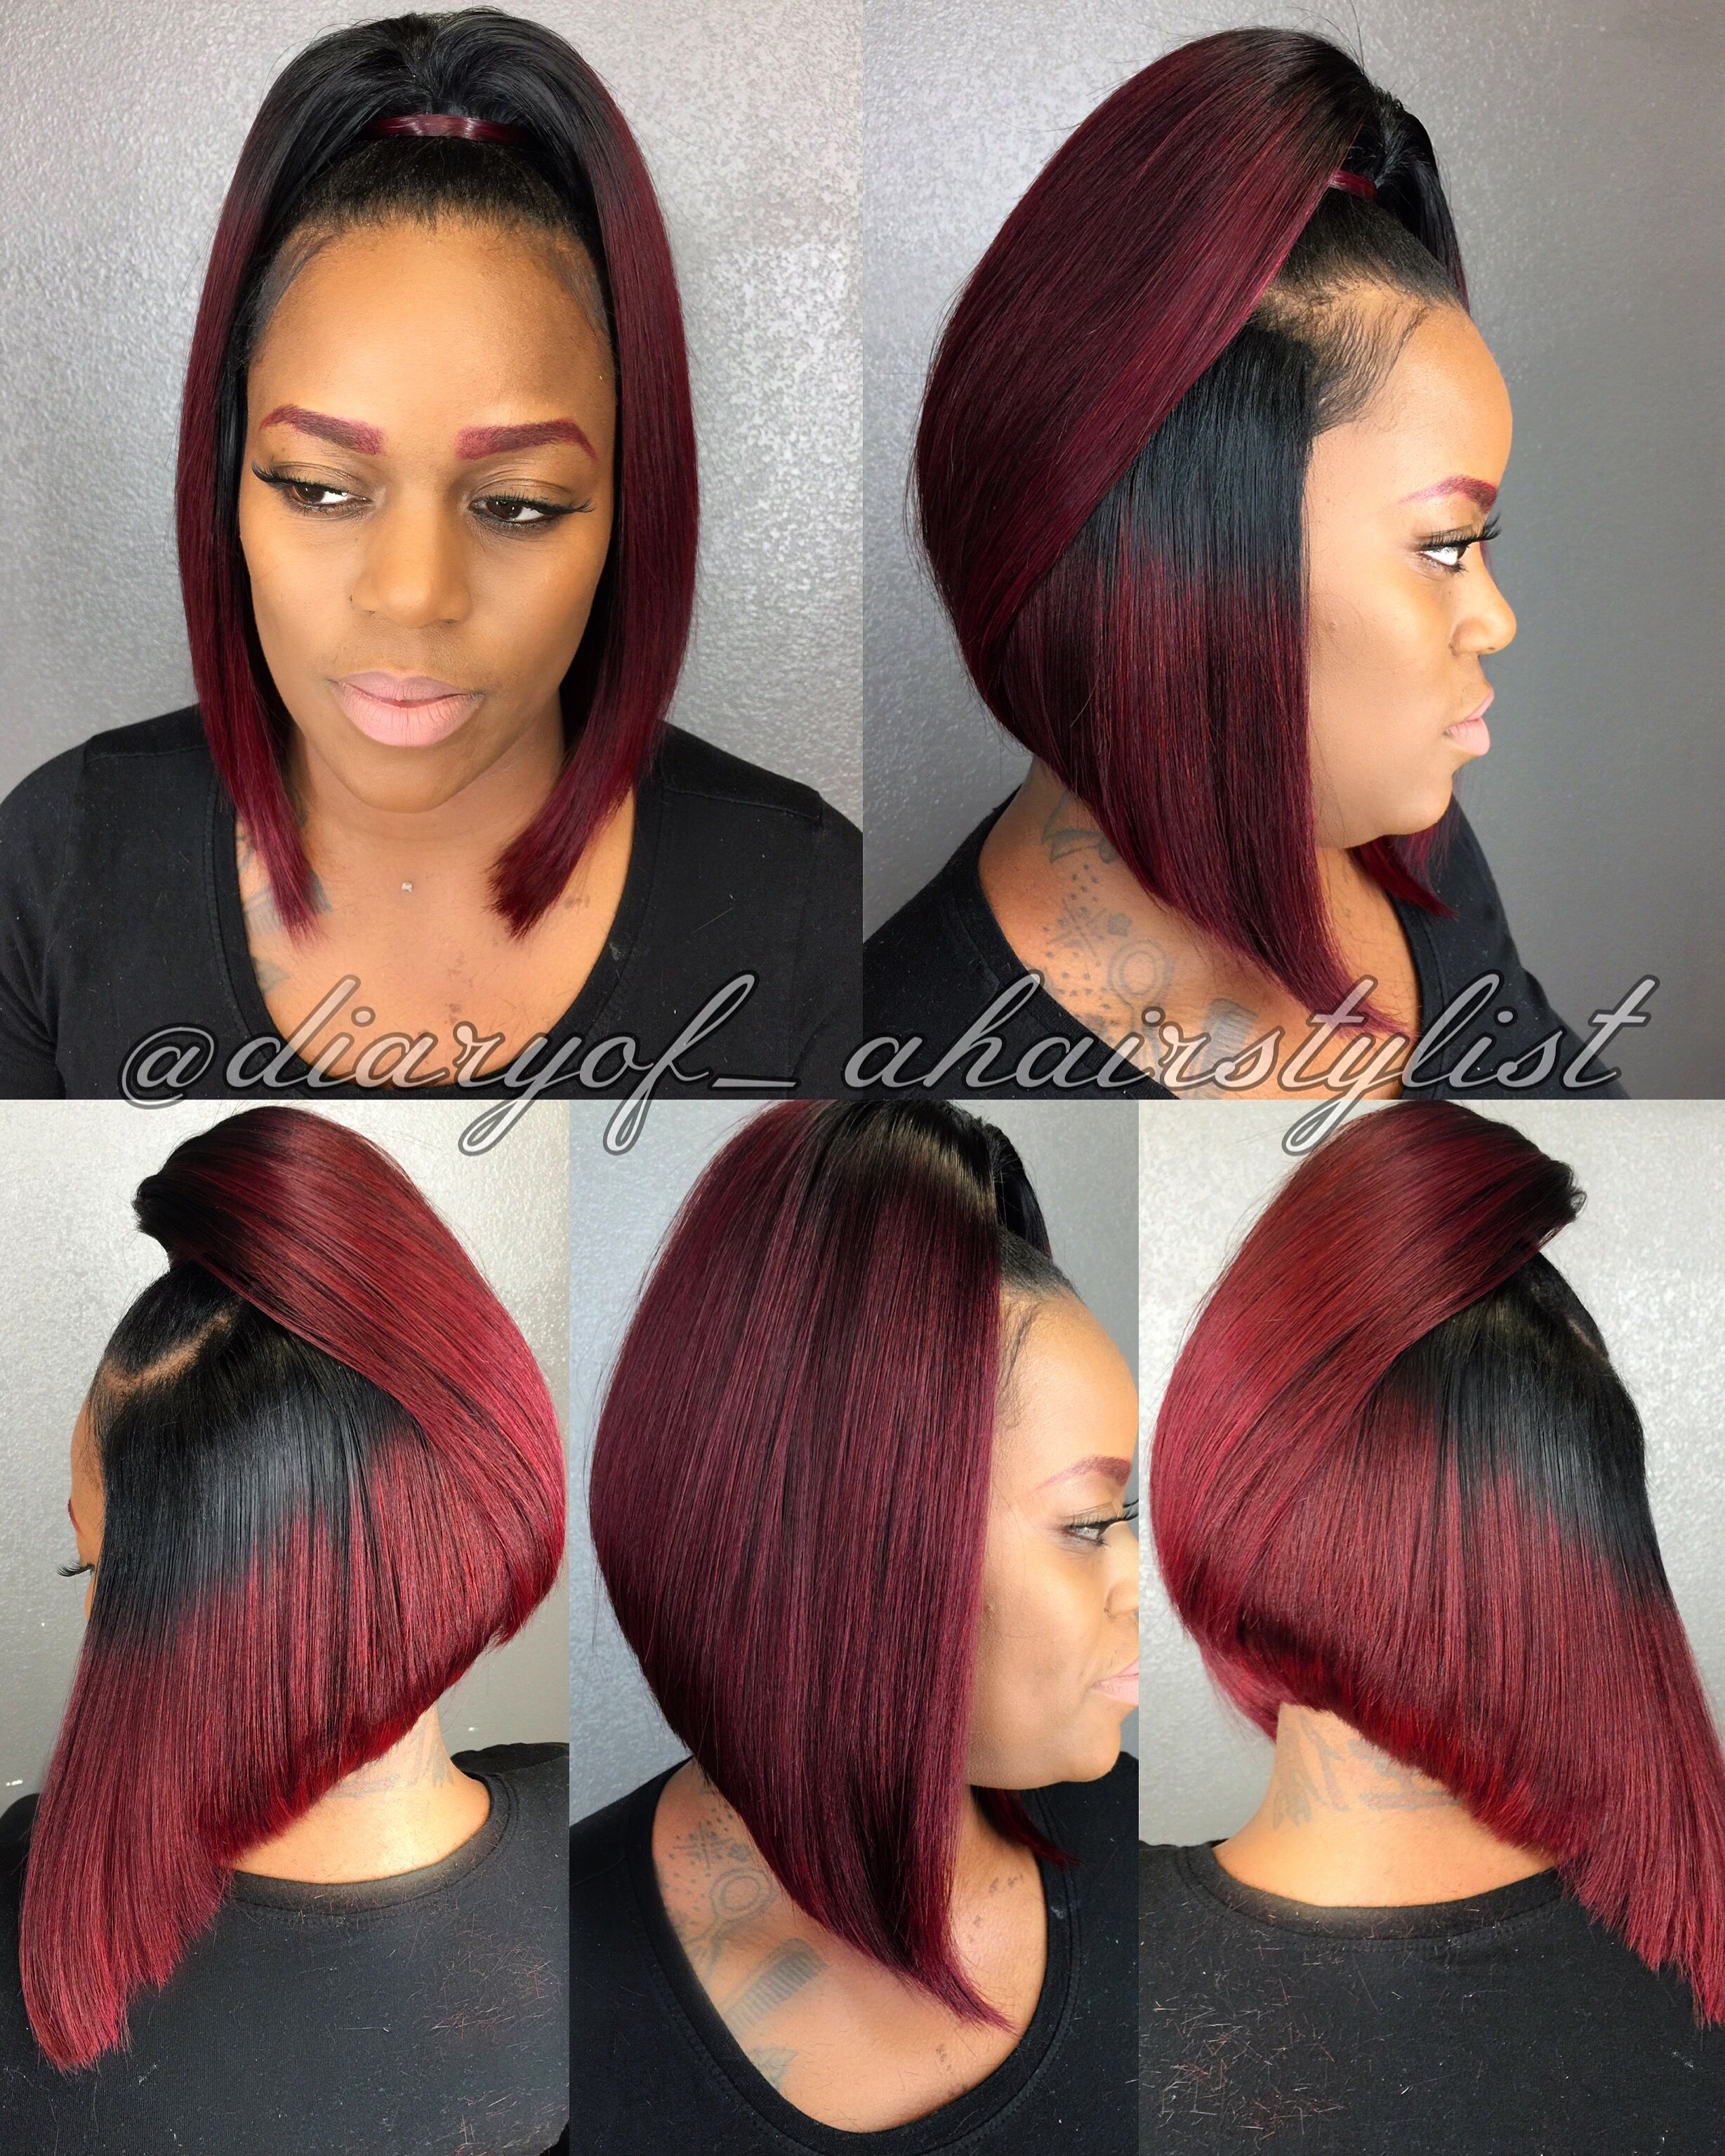 Bob Cut Ponytail : ponytail, Ponytail, Hairstyle!, ❤️, Follow, @diaryof_ahairstylist, Weave, Hairstyles,, Quick, Hairstyles